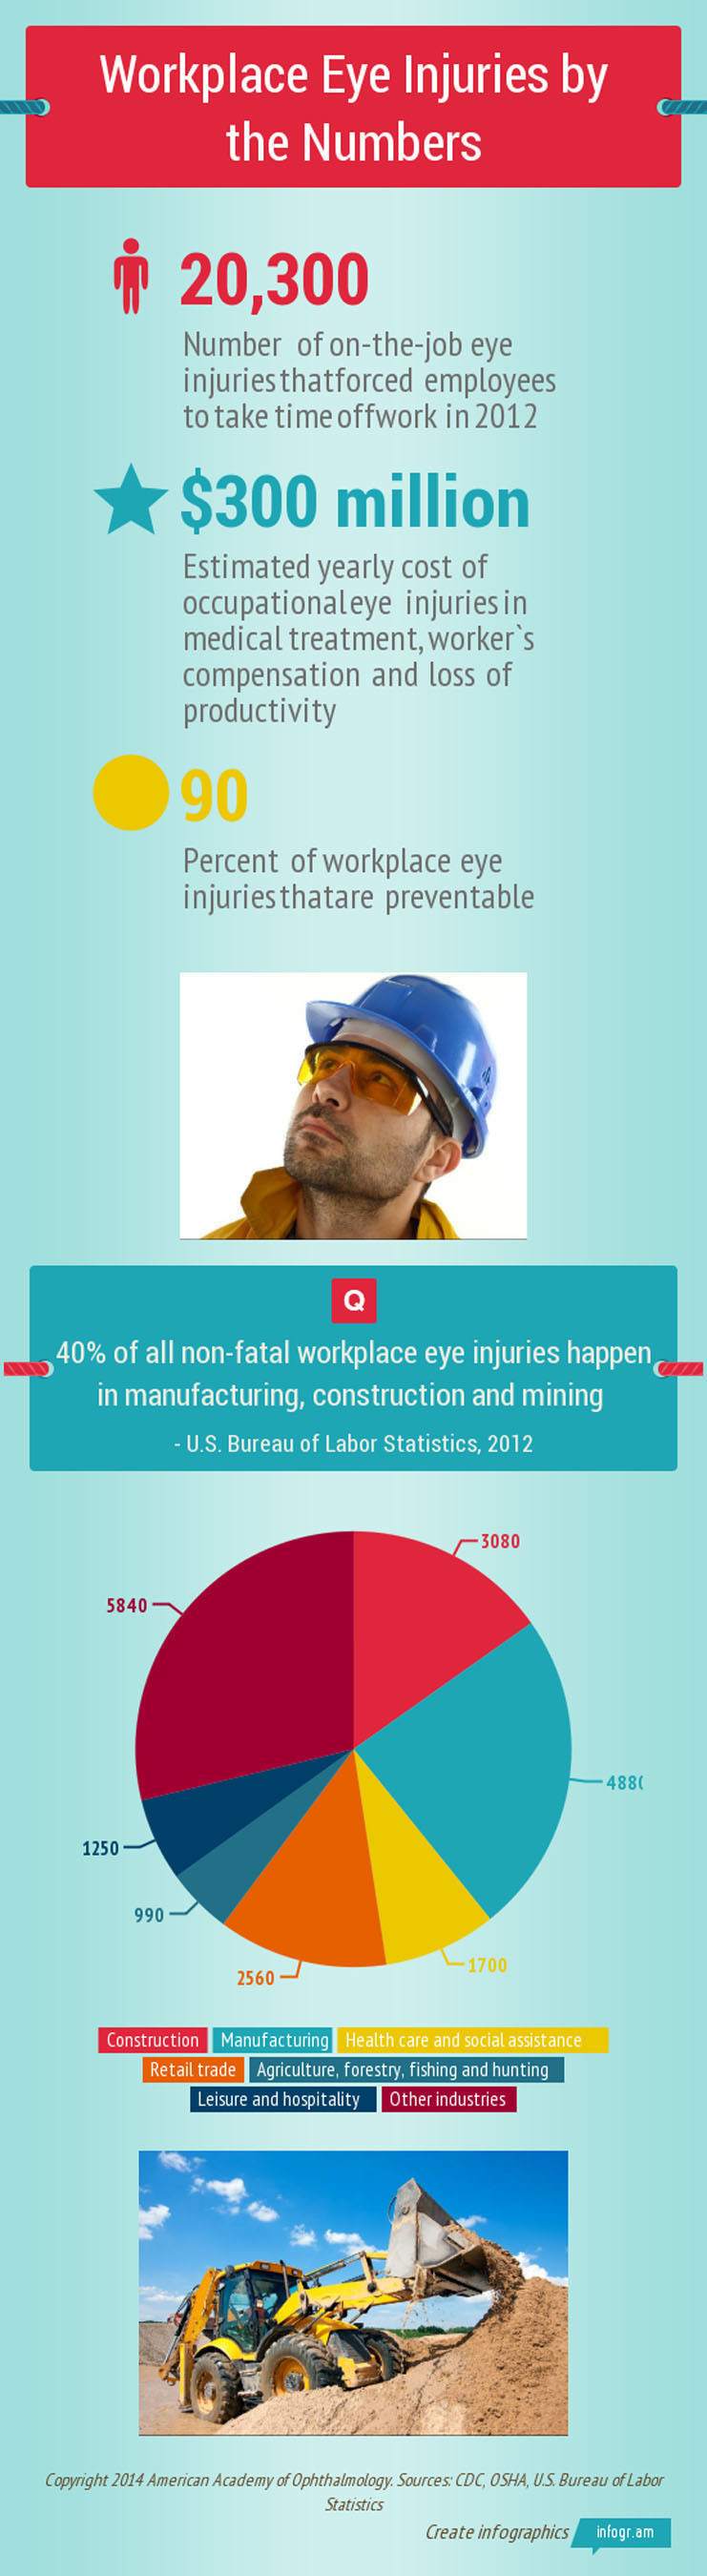 During Workplace Eye Wellness Month in March, the American Academy of Ophthalmology is reminding employers and workers about the importance of wearing eye protection.  (PRNewsFoto/American Academy of Ophthalmology)